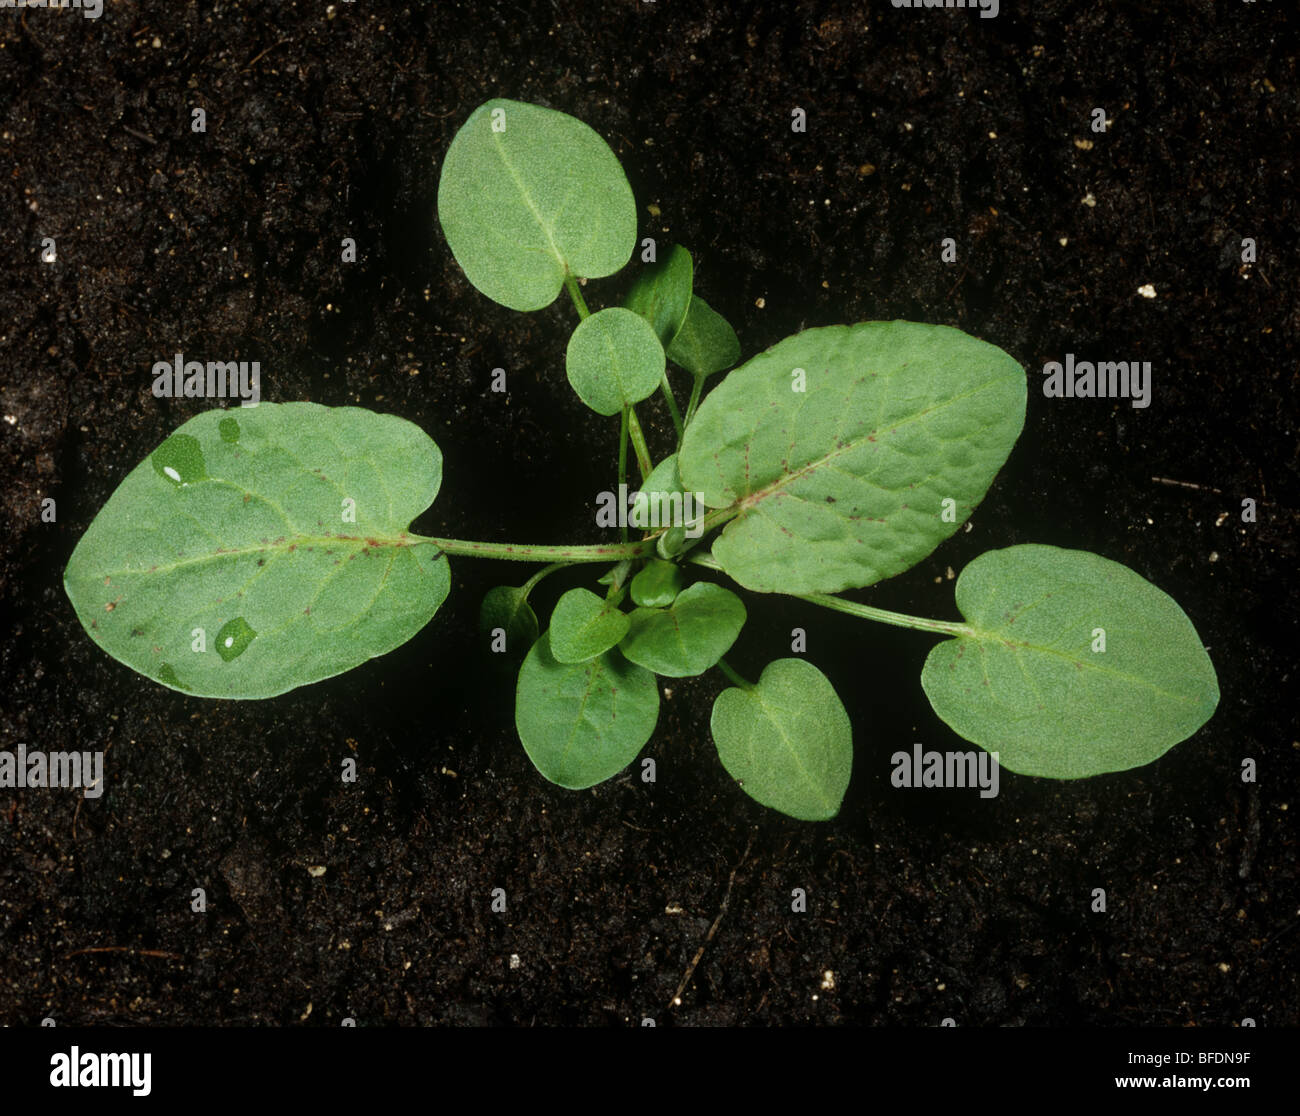 Broad dock (Rumex obtusifolius) young plant on soil background - Stock Image